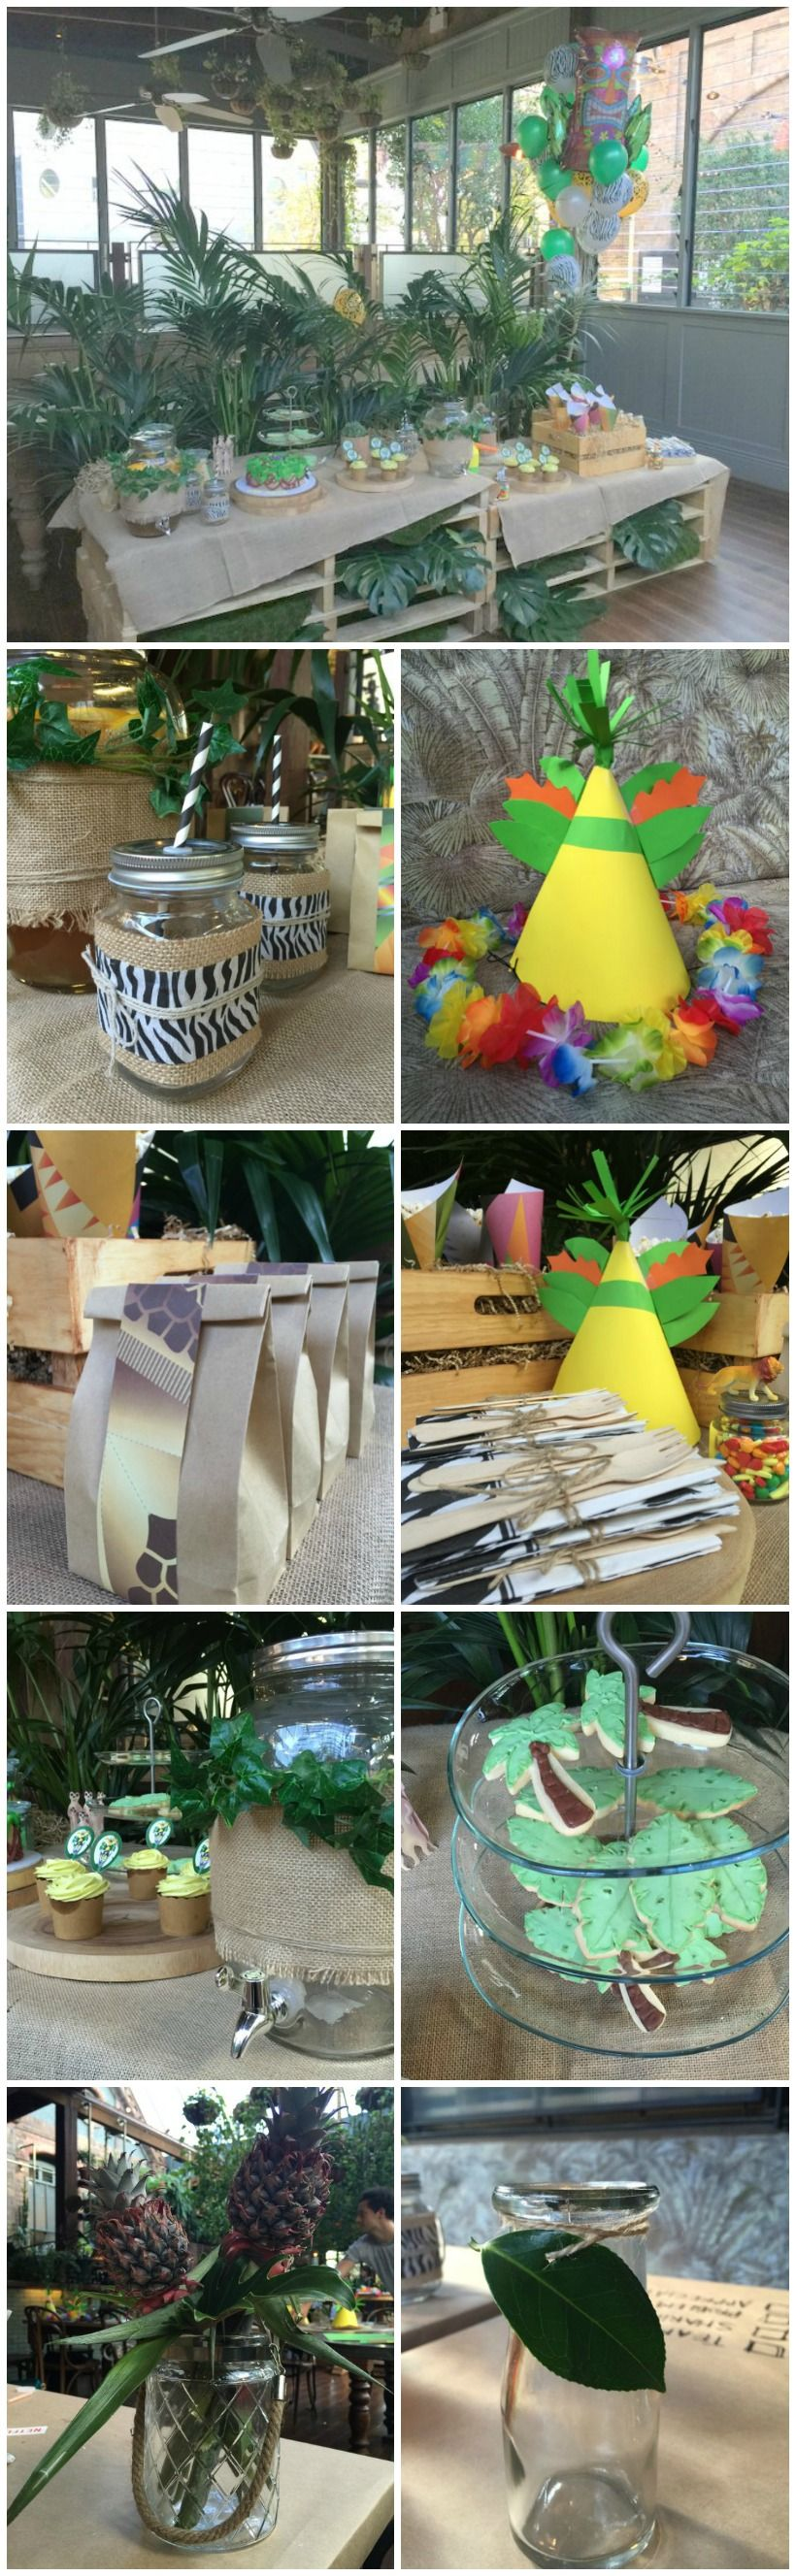 Madagascar King Julien Themed Birthday Party